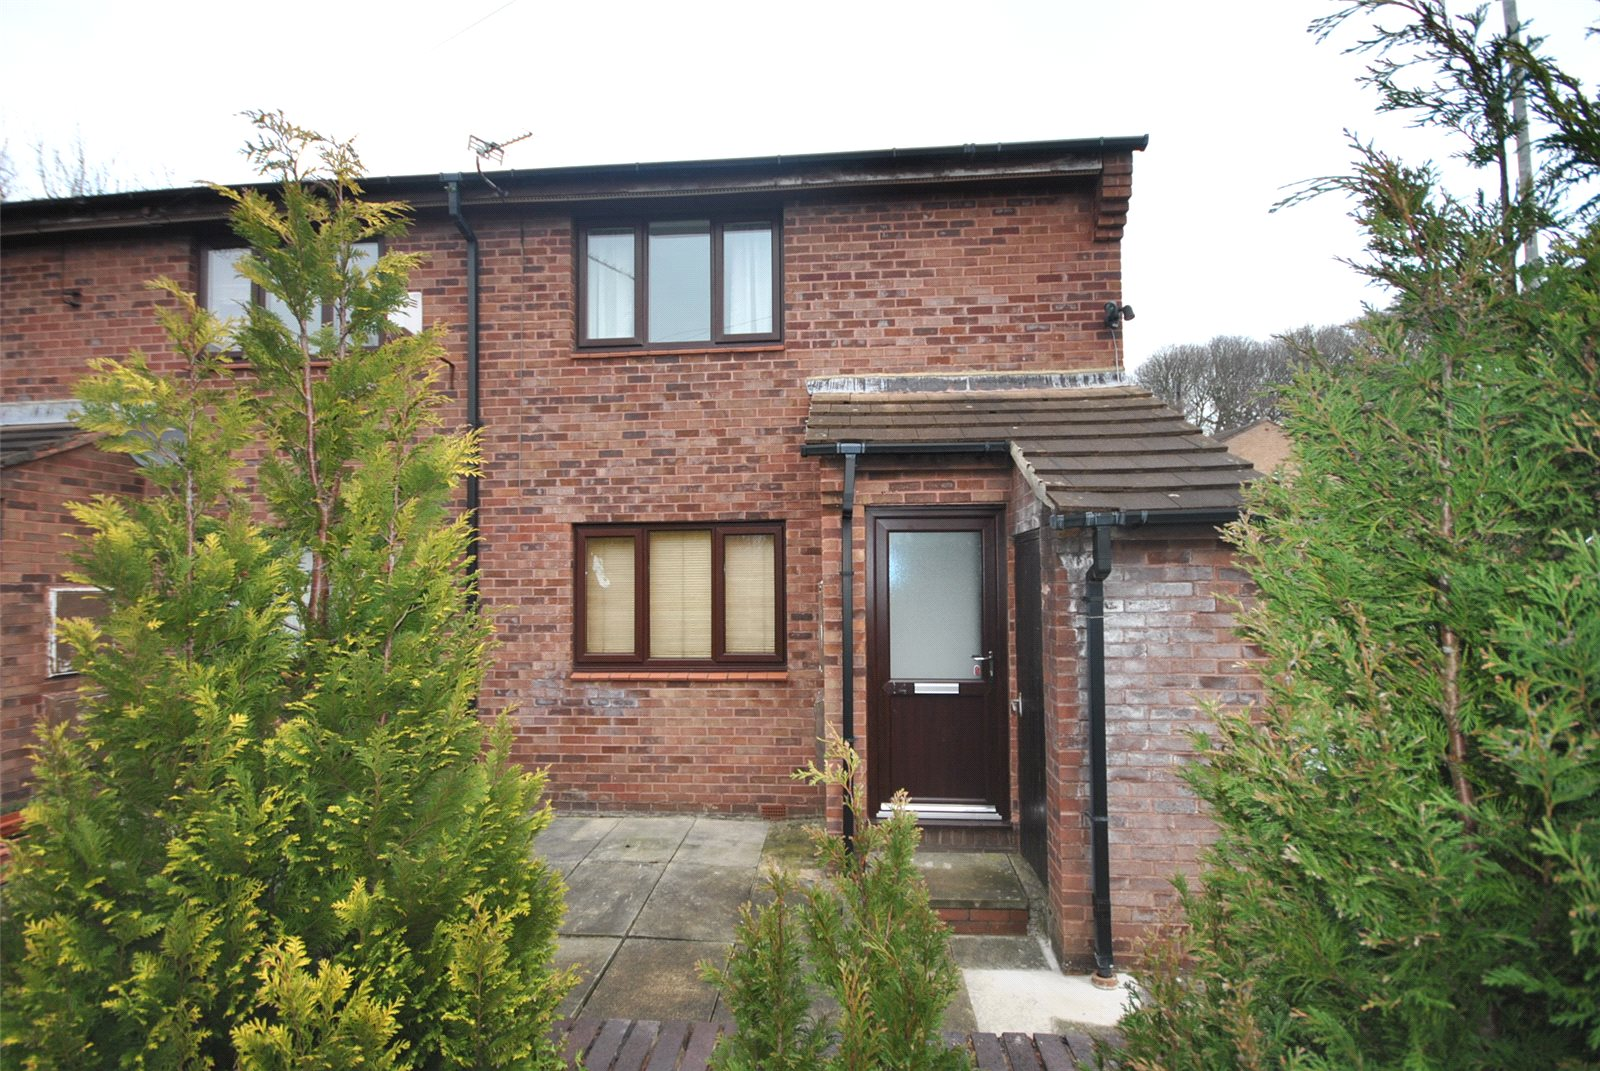 Property for sale in Adel, ideal investment property. Outside red brick end terrace